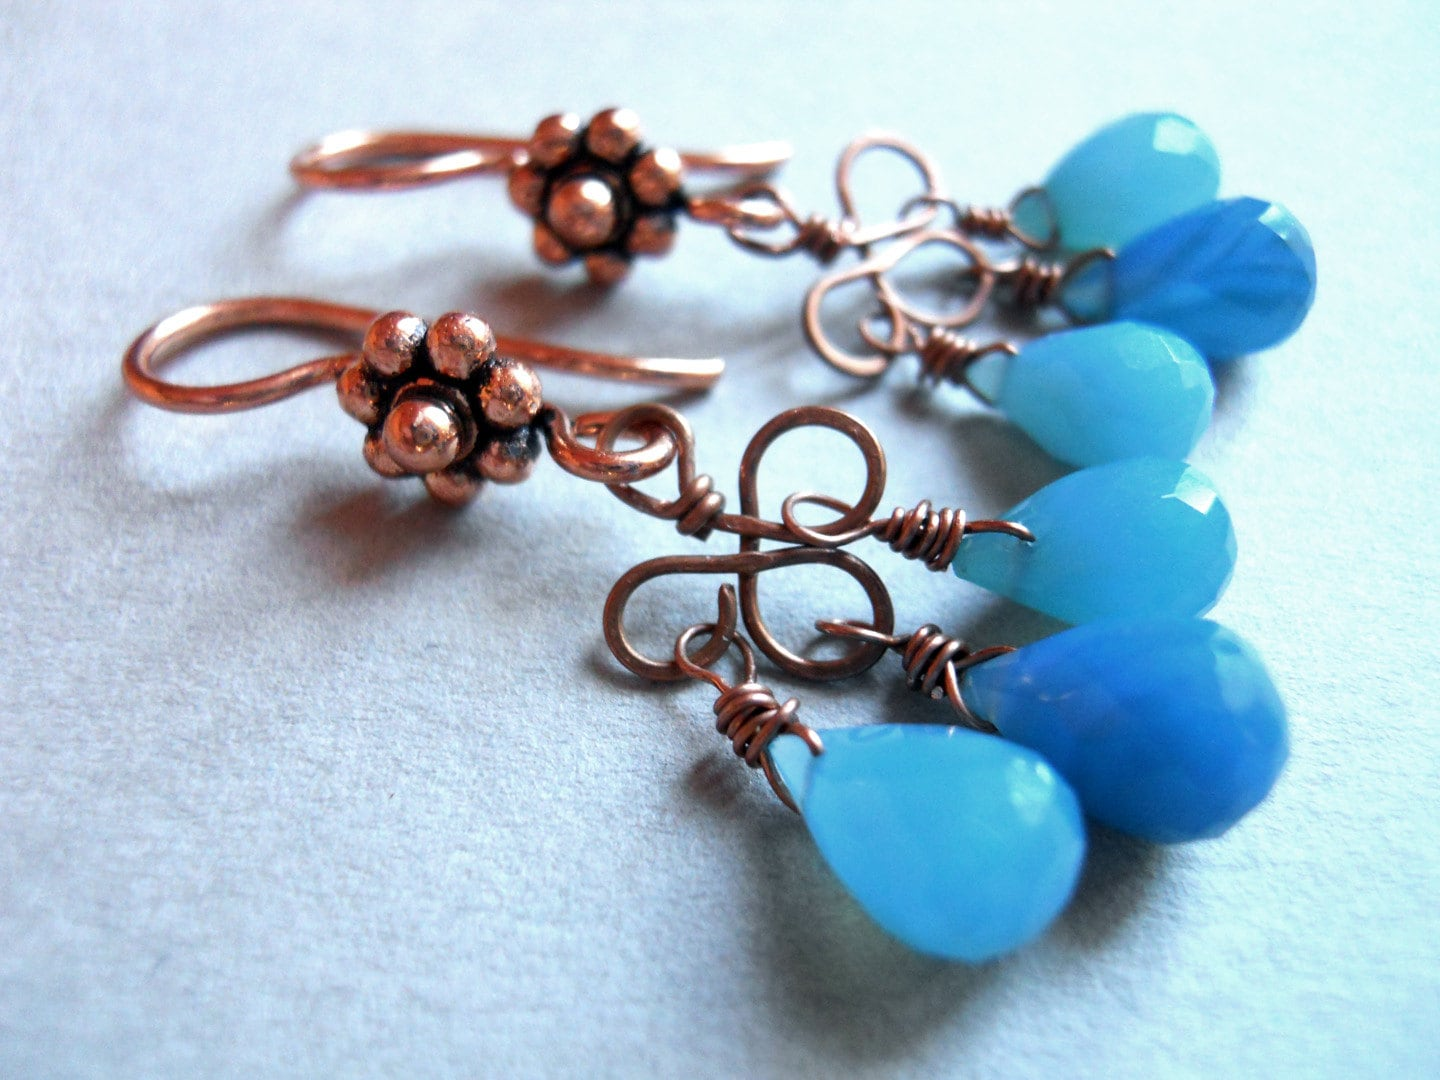 Blue chalcedony on copper chandelier earrings - Mixed Blues - $35.00 USD